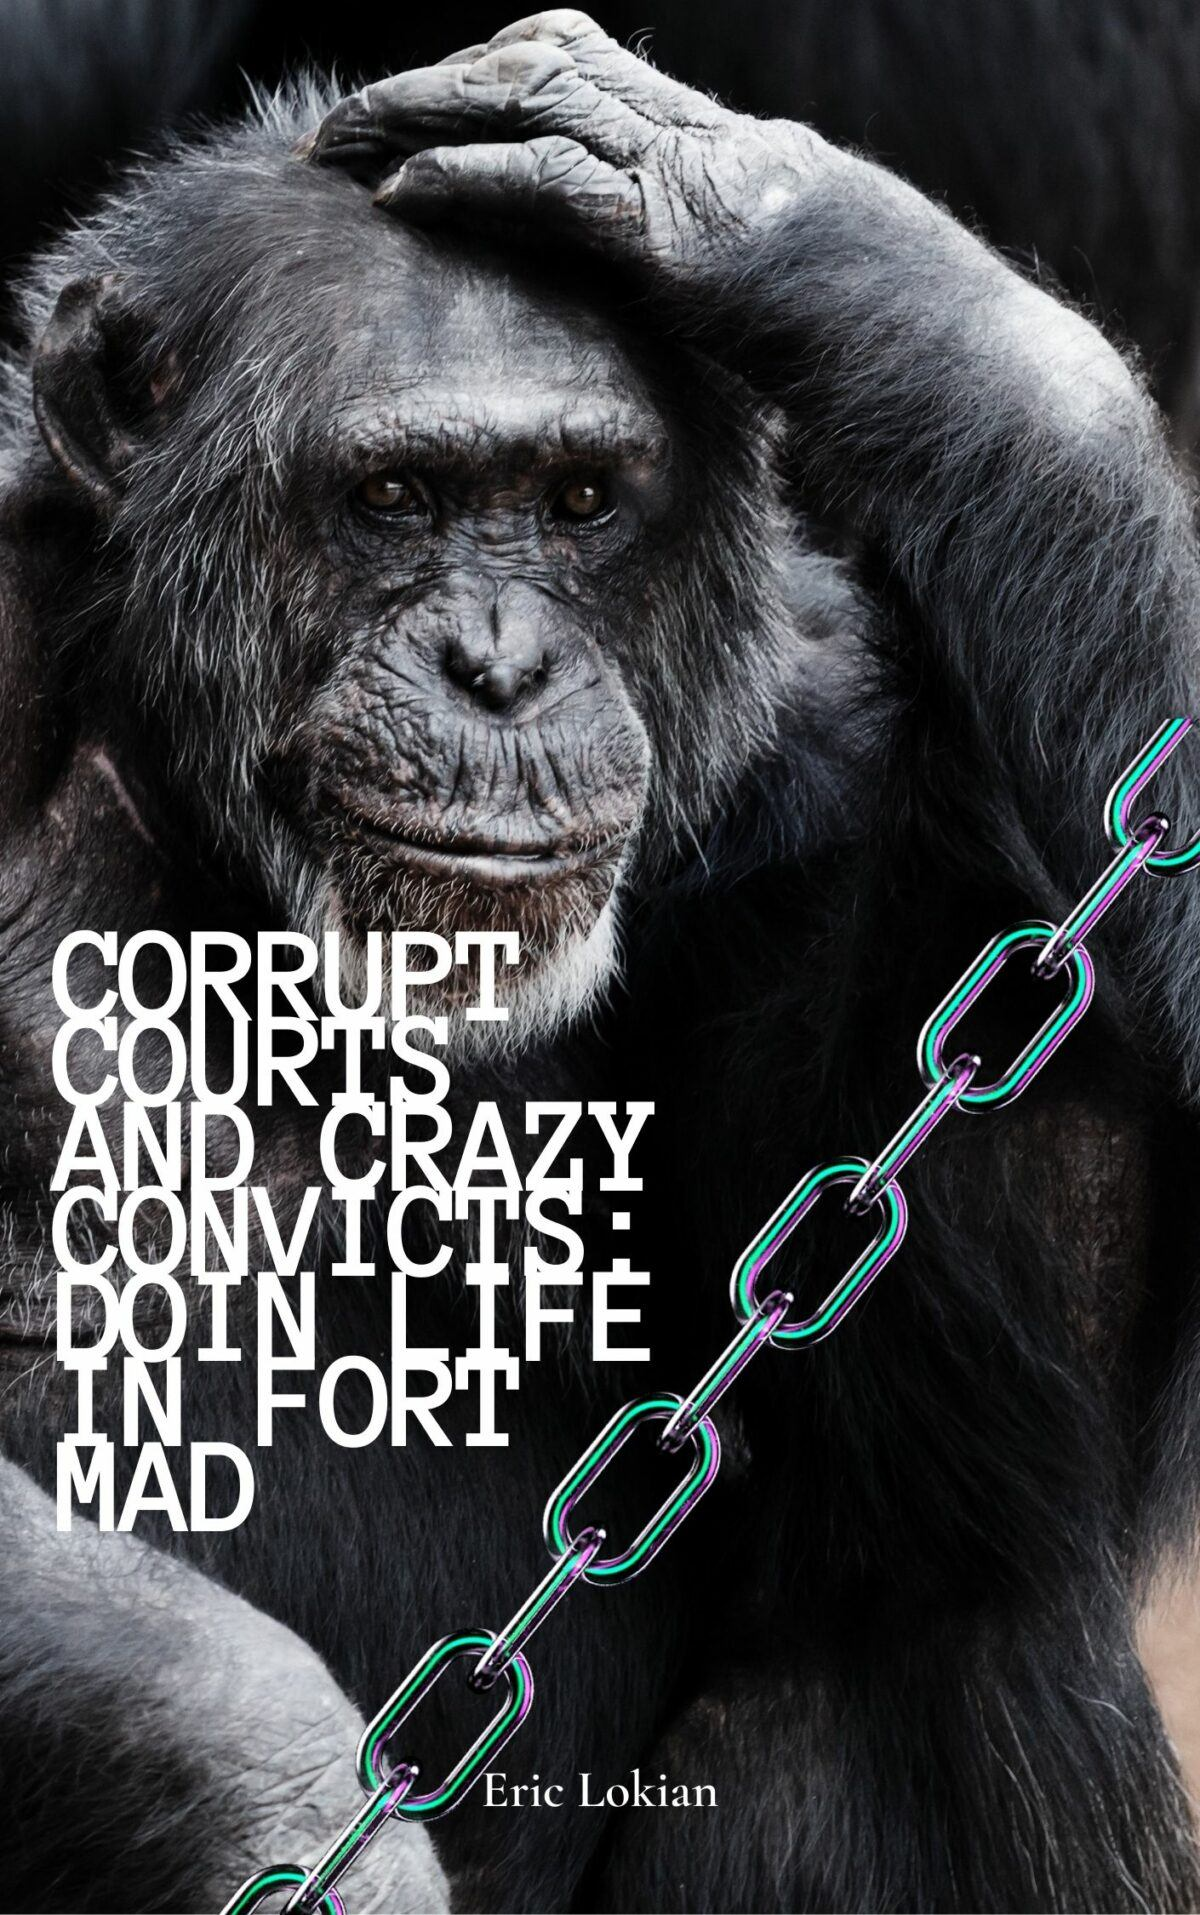 Books Written by Prison Inmates: Corrupt Courts and Crazy Convicts: Doin Life in Fort Mad